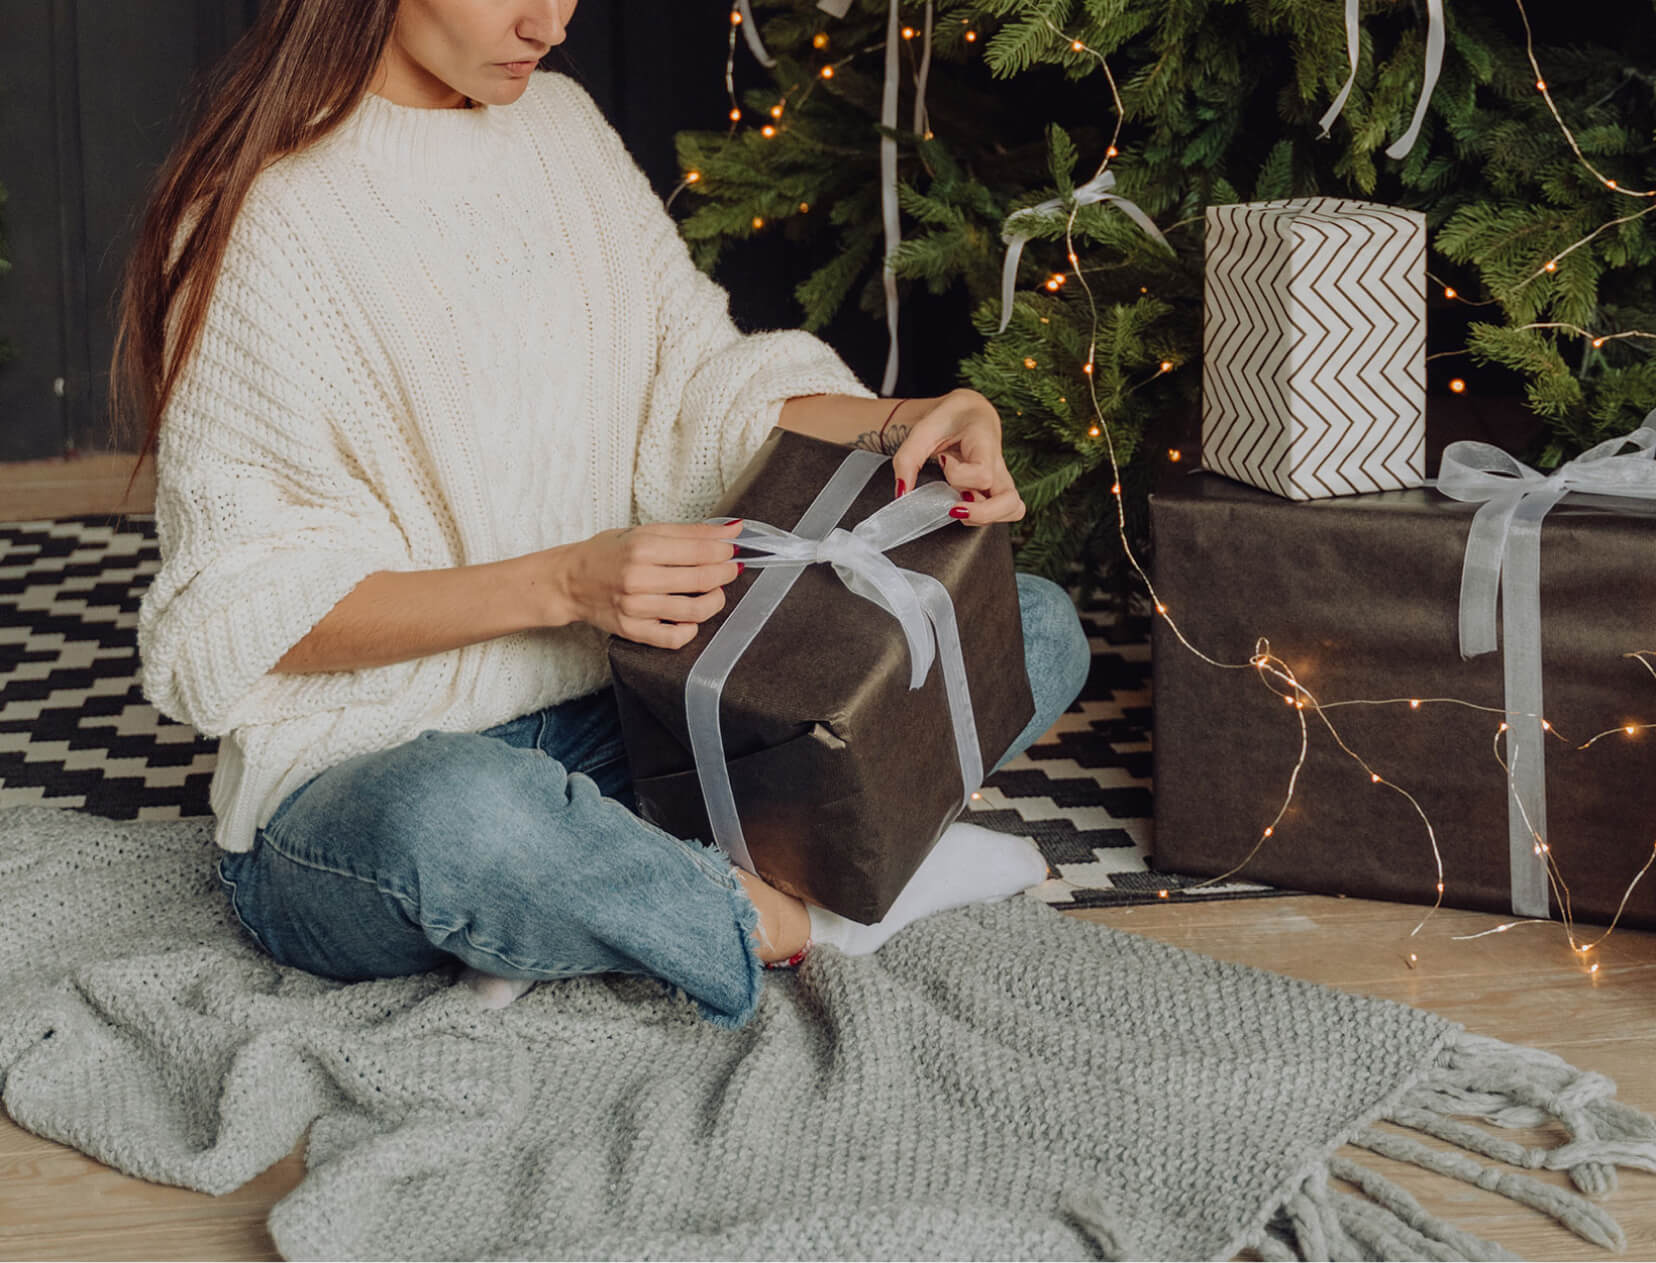 woman opening a present